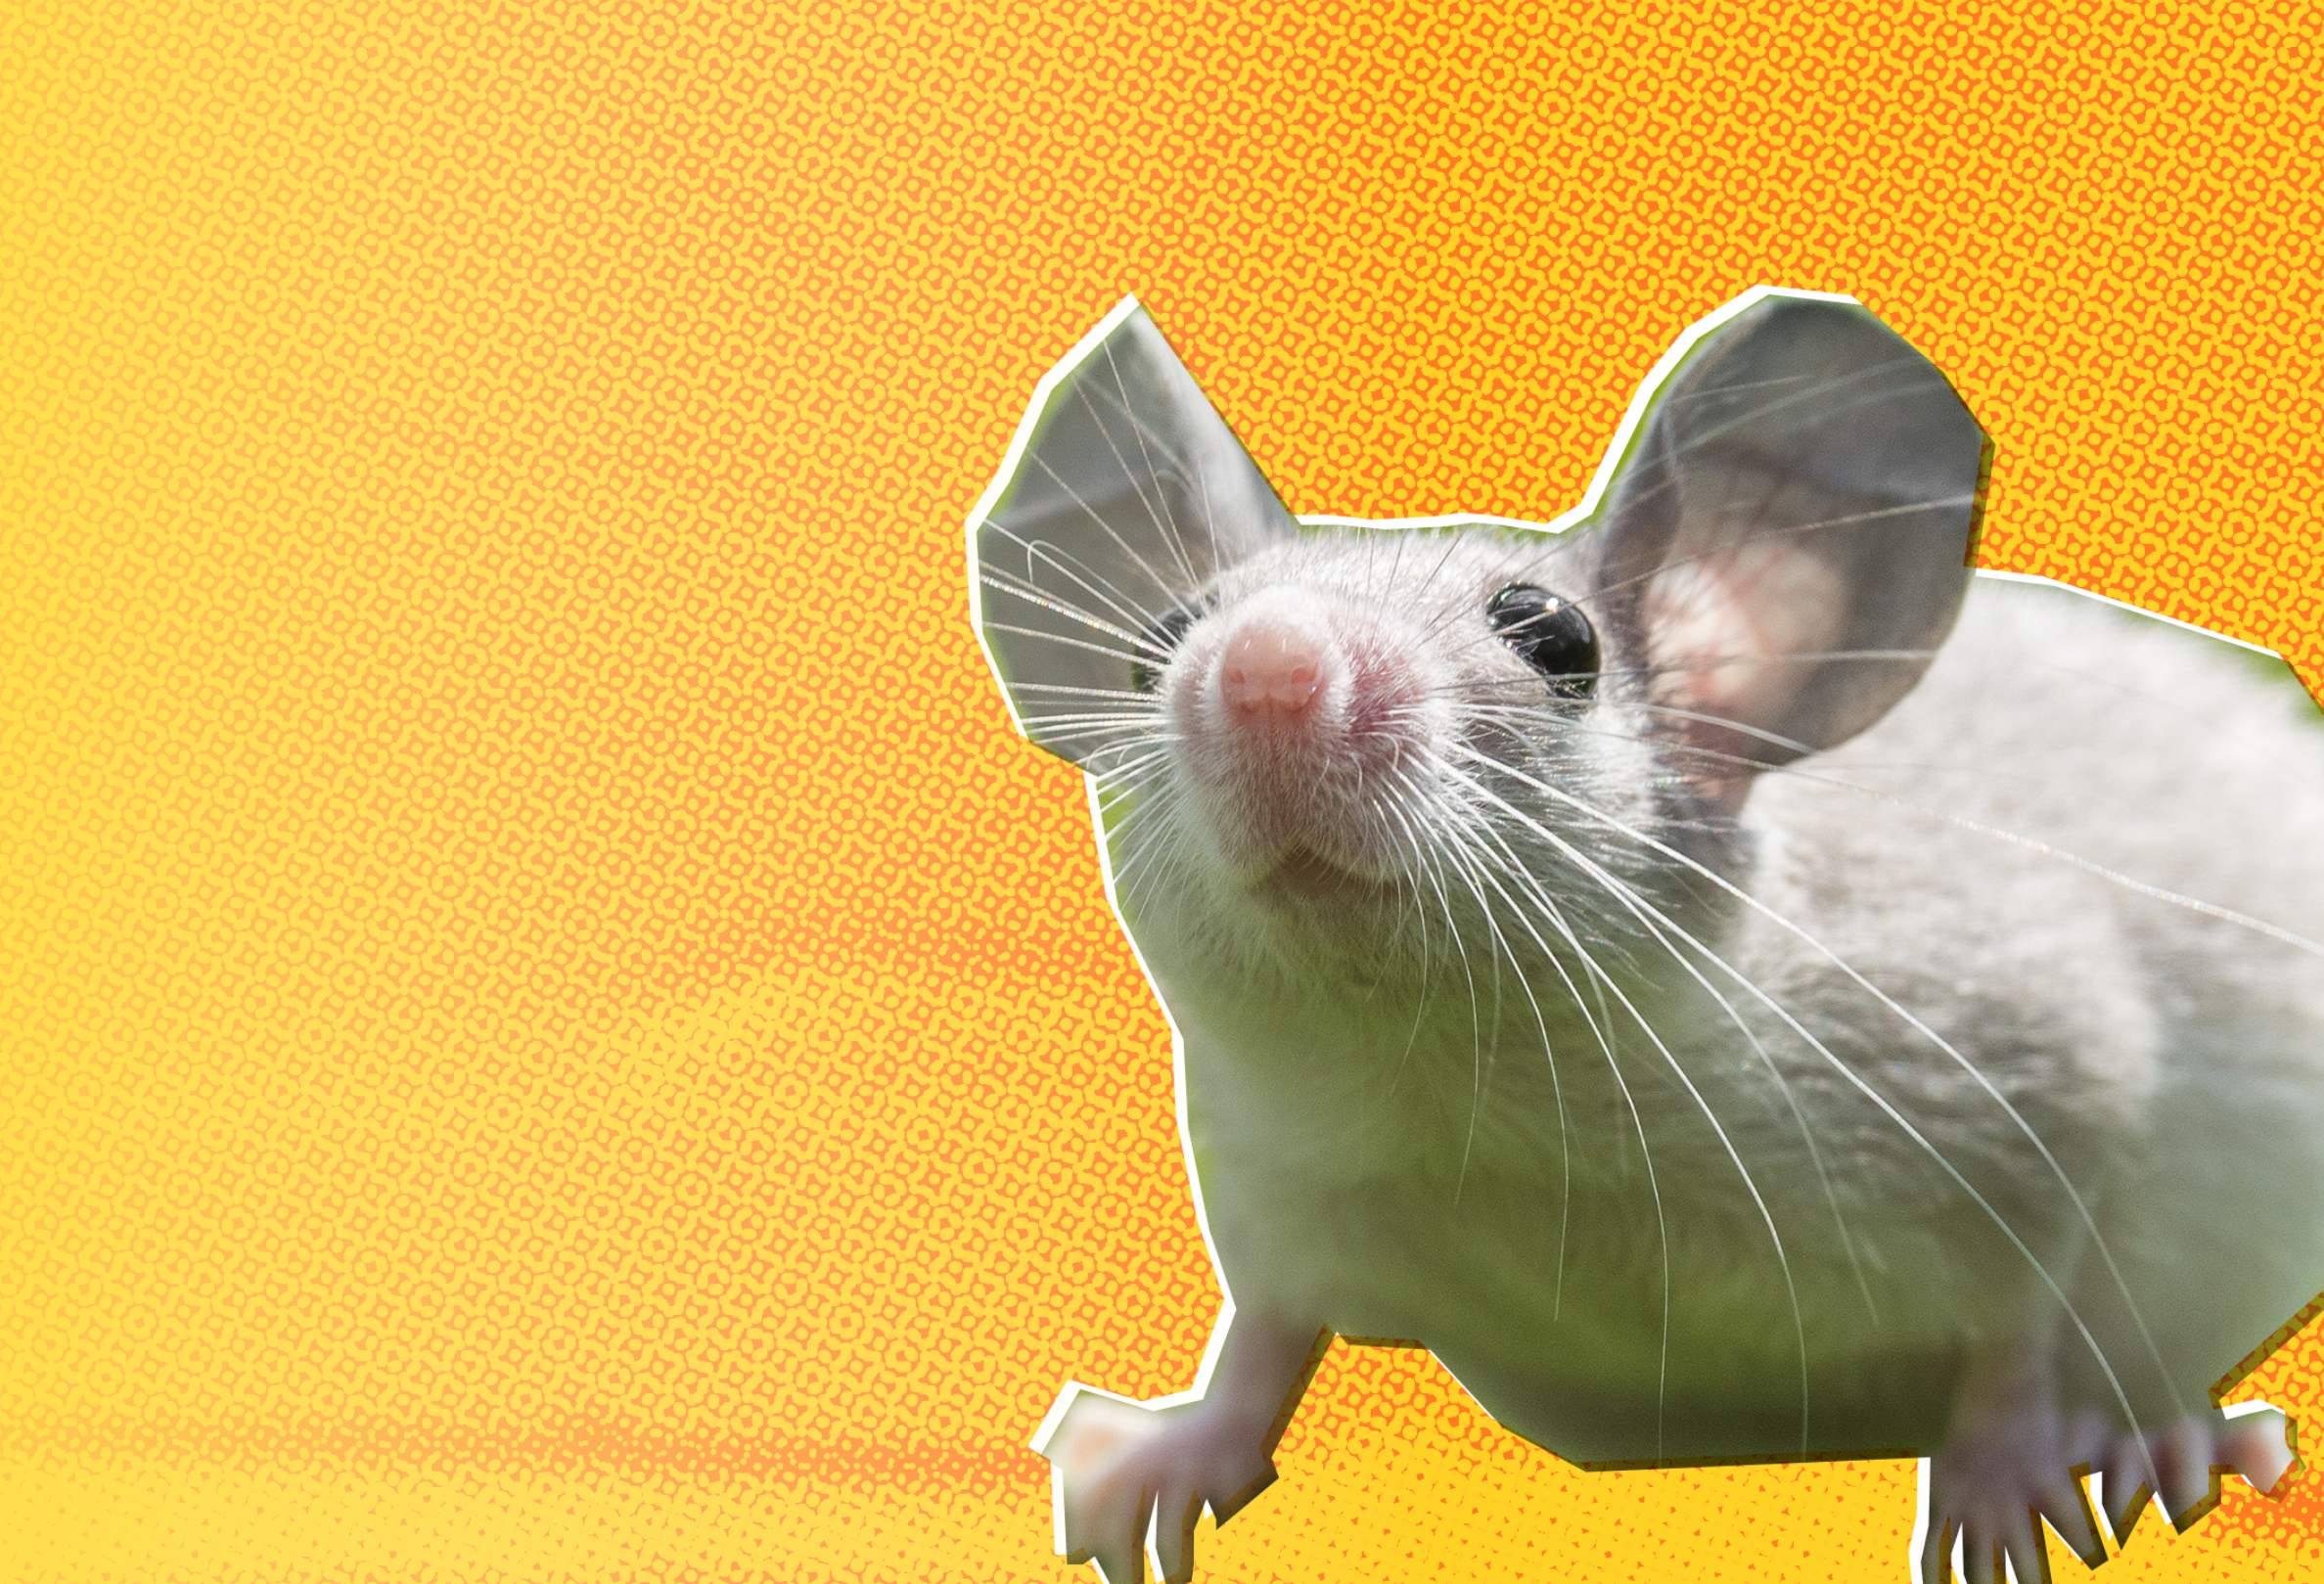 A small white mouse looks up hopefully against a stylized yellow background